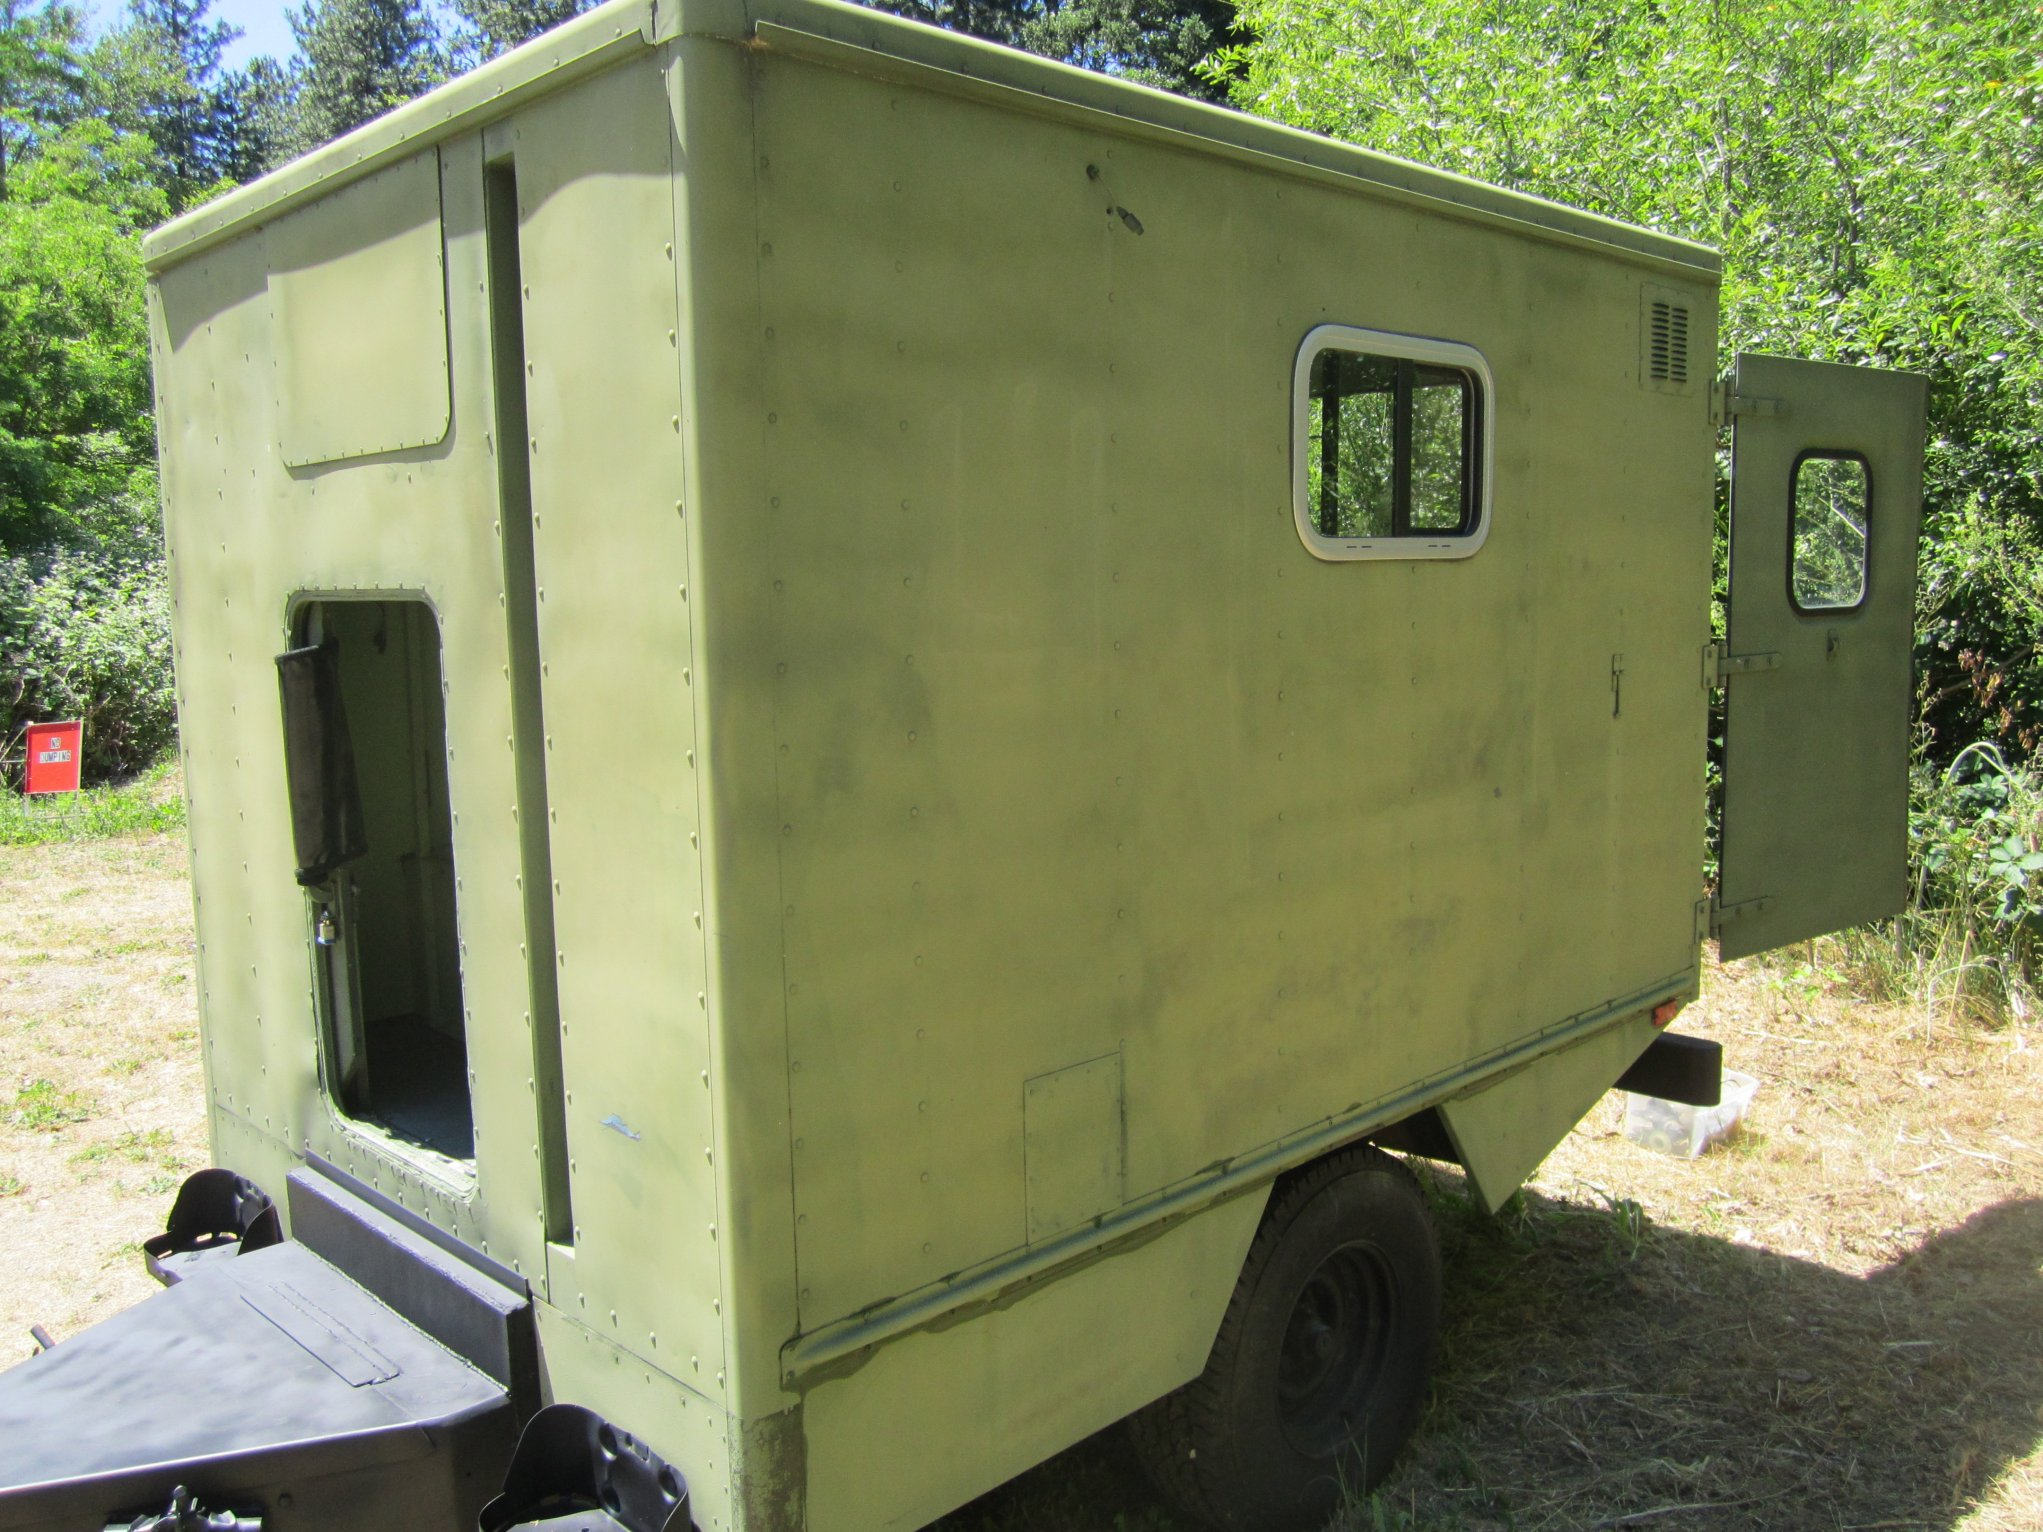 Wonderful Perfect For Hunting,camping Or Even To Use For Bringing Stuff To Cabin New Trailer Built Last Summer And Only Used Twice Trailer Built To Accommodate A Twin